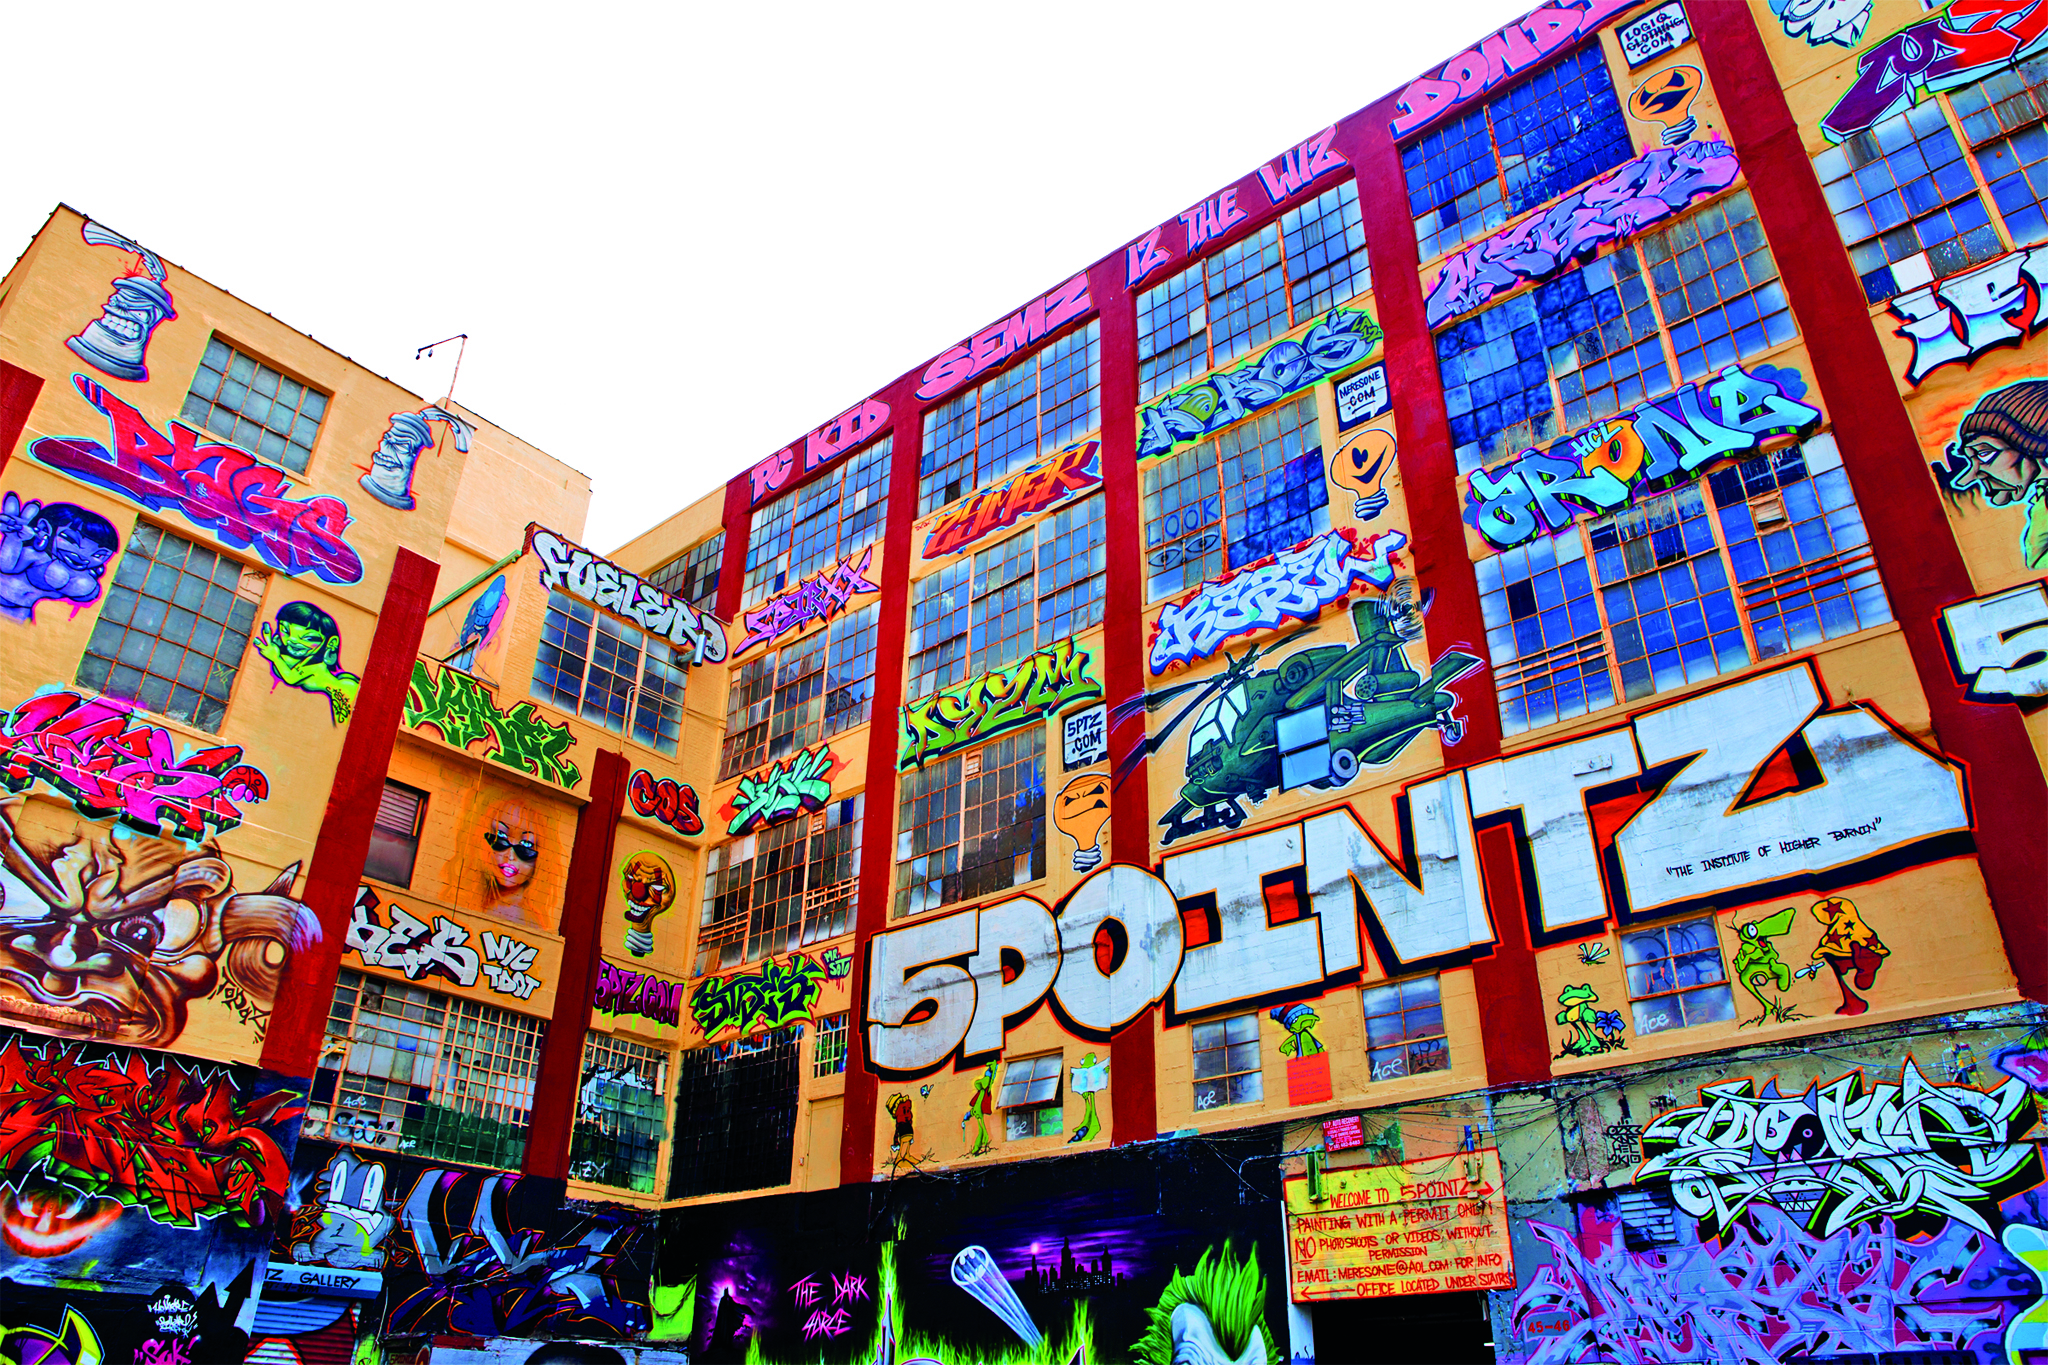 Celebrate 40 years of Hip-Hop at 5 Pointz